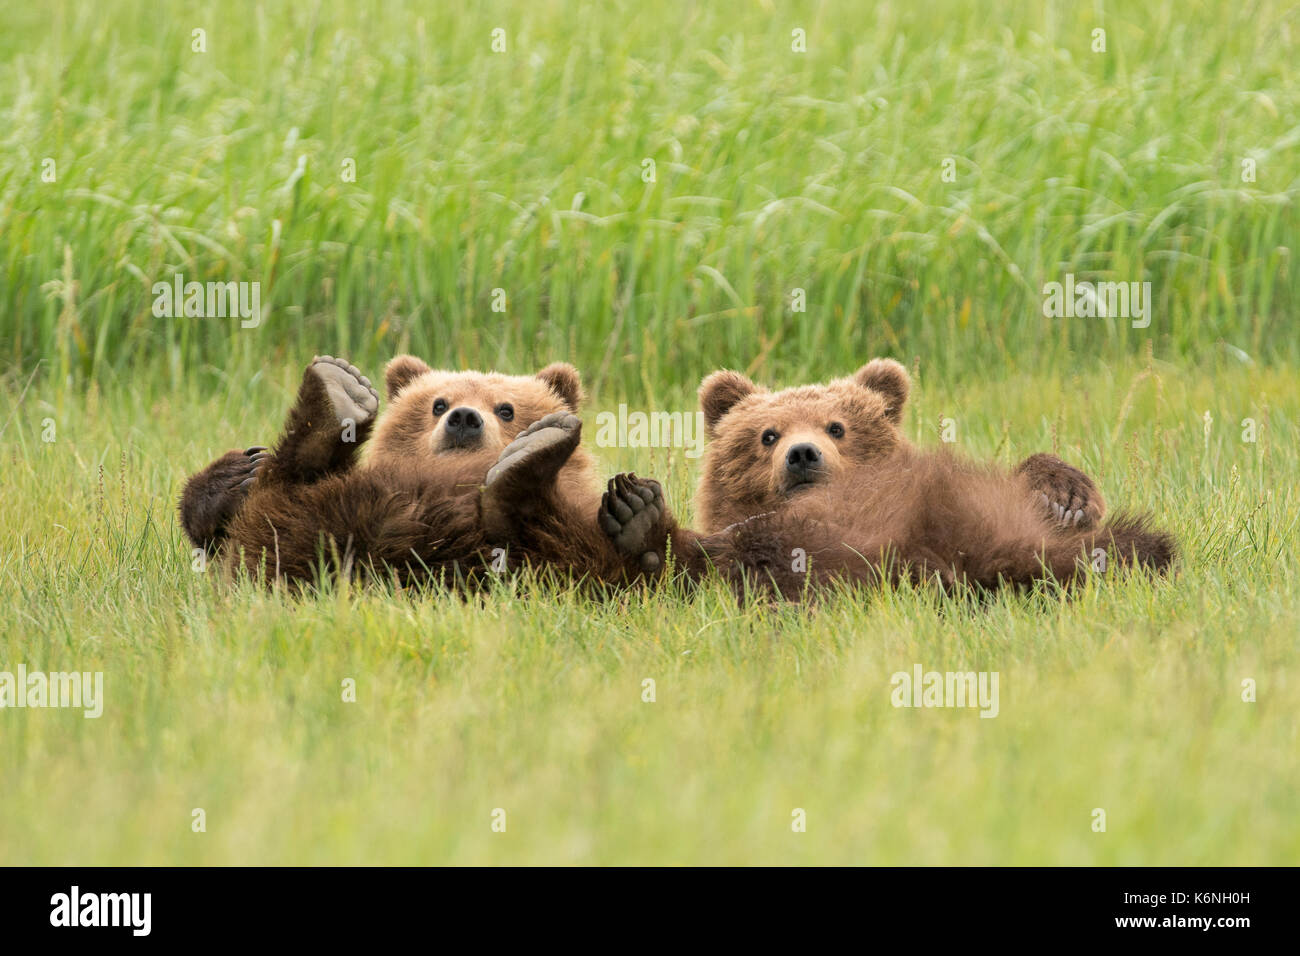 Yearling cubs reclining - Stock Image